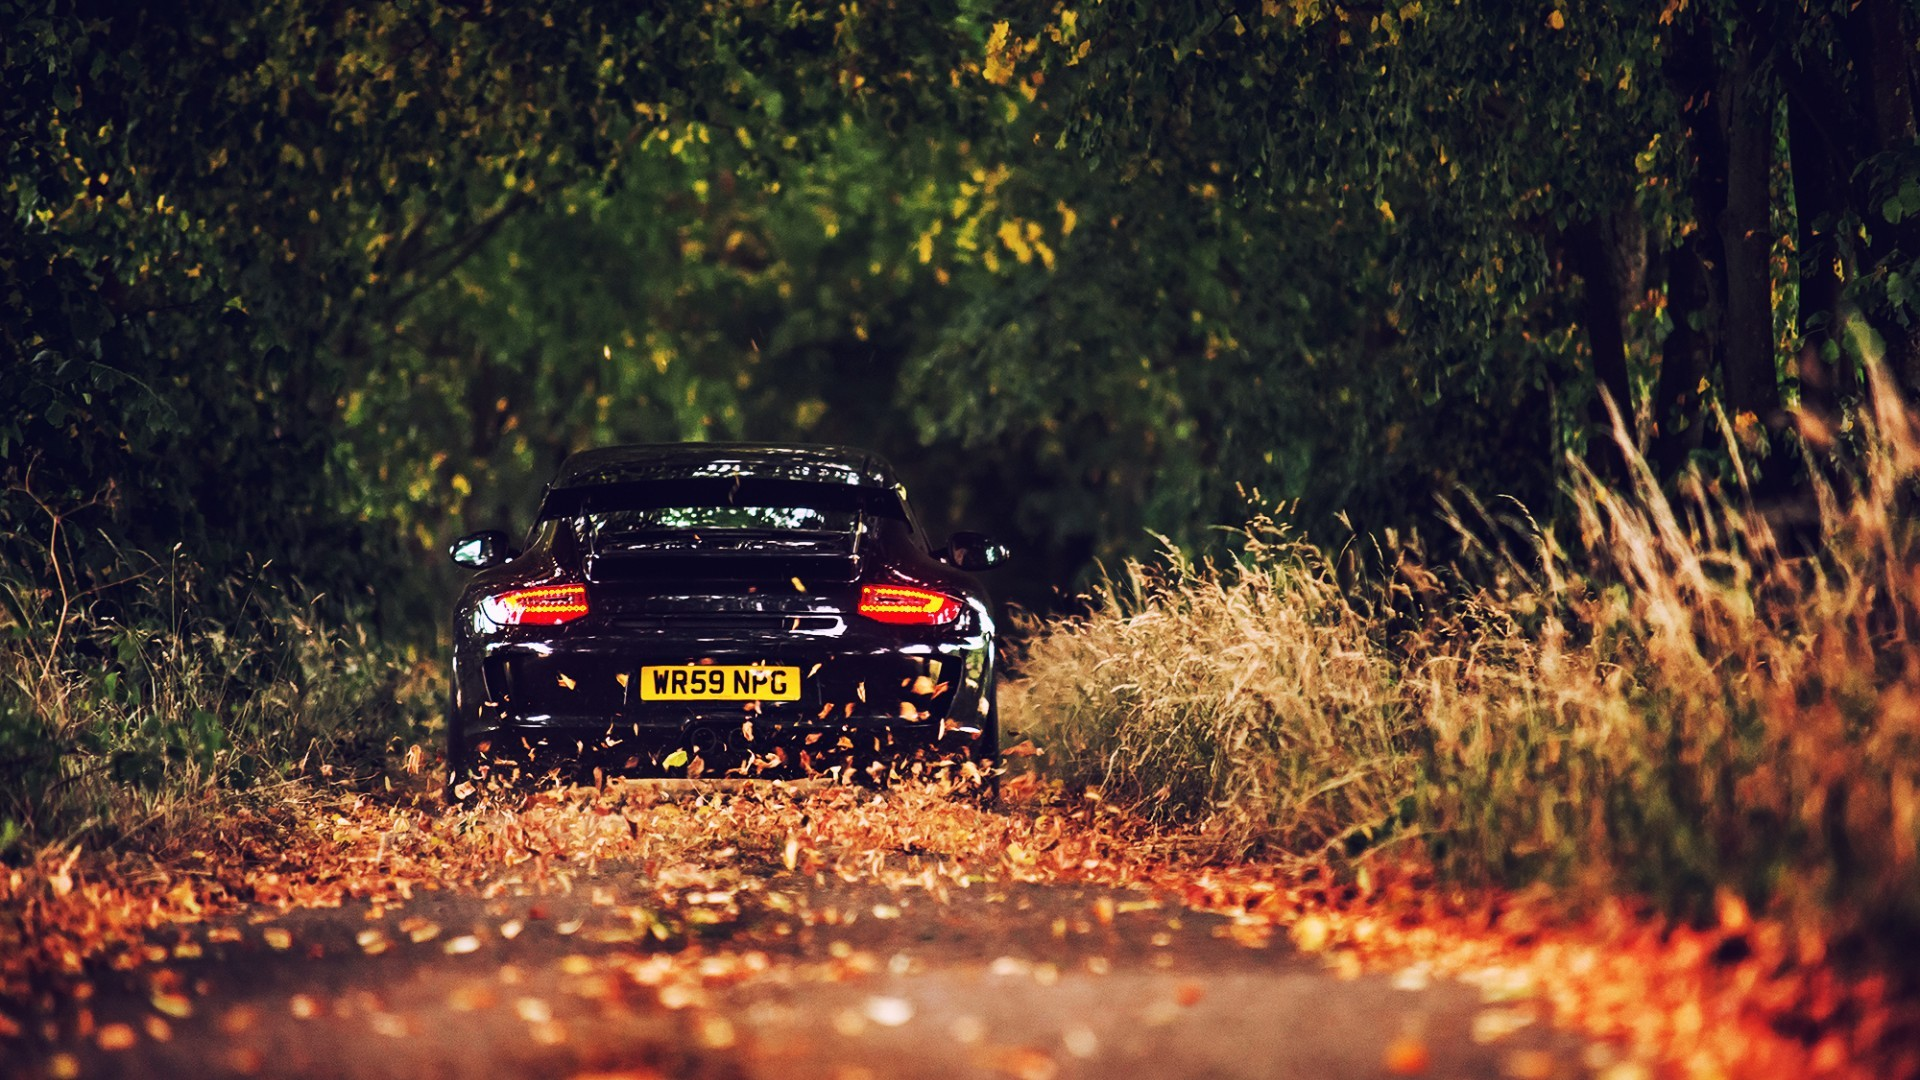 113 porsche 911 hd wallpapers | background images - wallpaper abyss